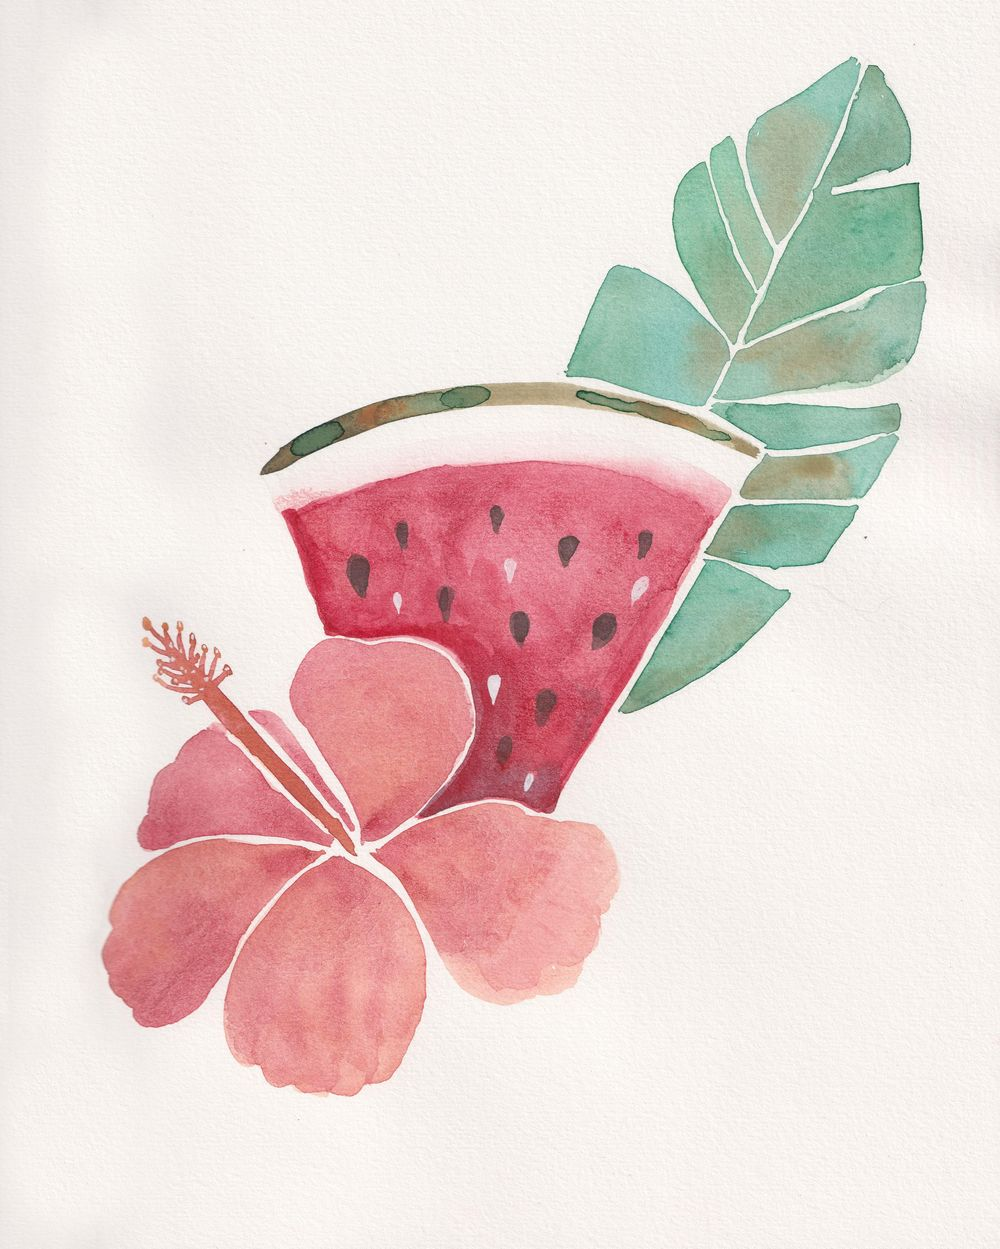 Summer fruits - image 2 - student project